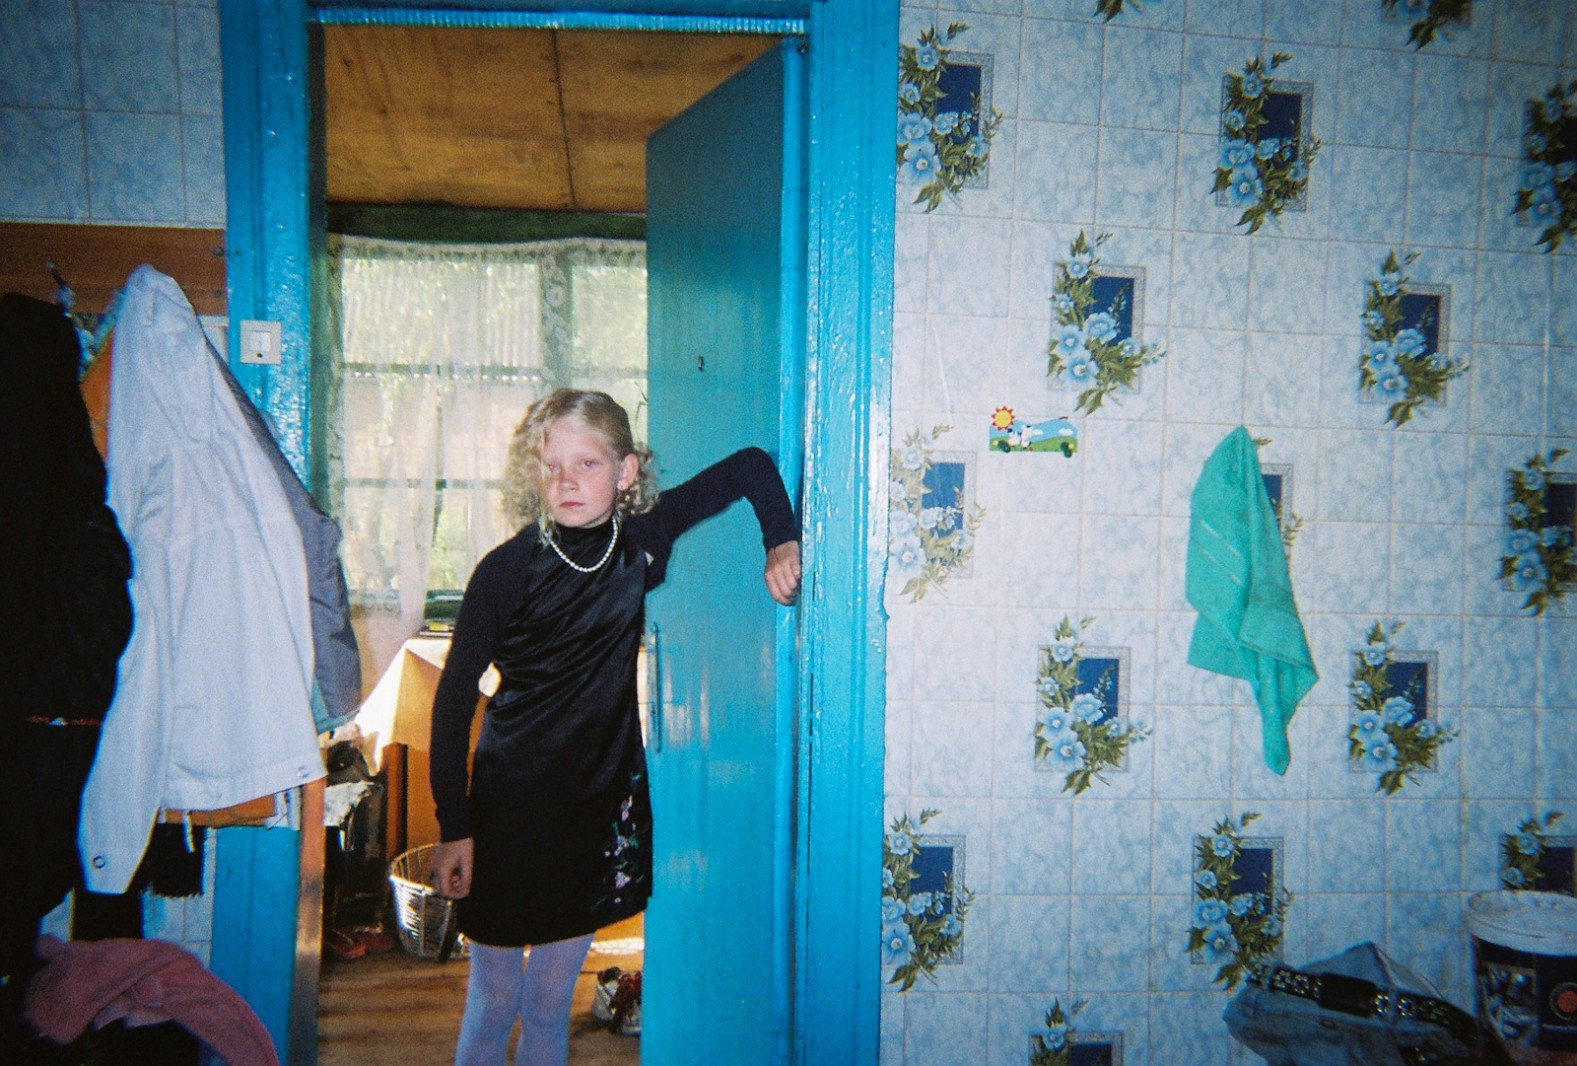 A young girl poses for the camera in her house adjacent to the Chernobyl Exclusion Zone